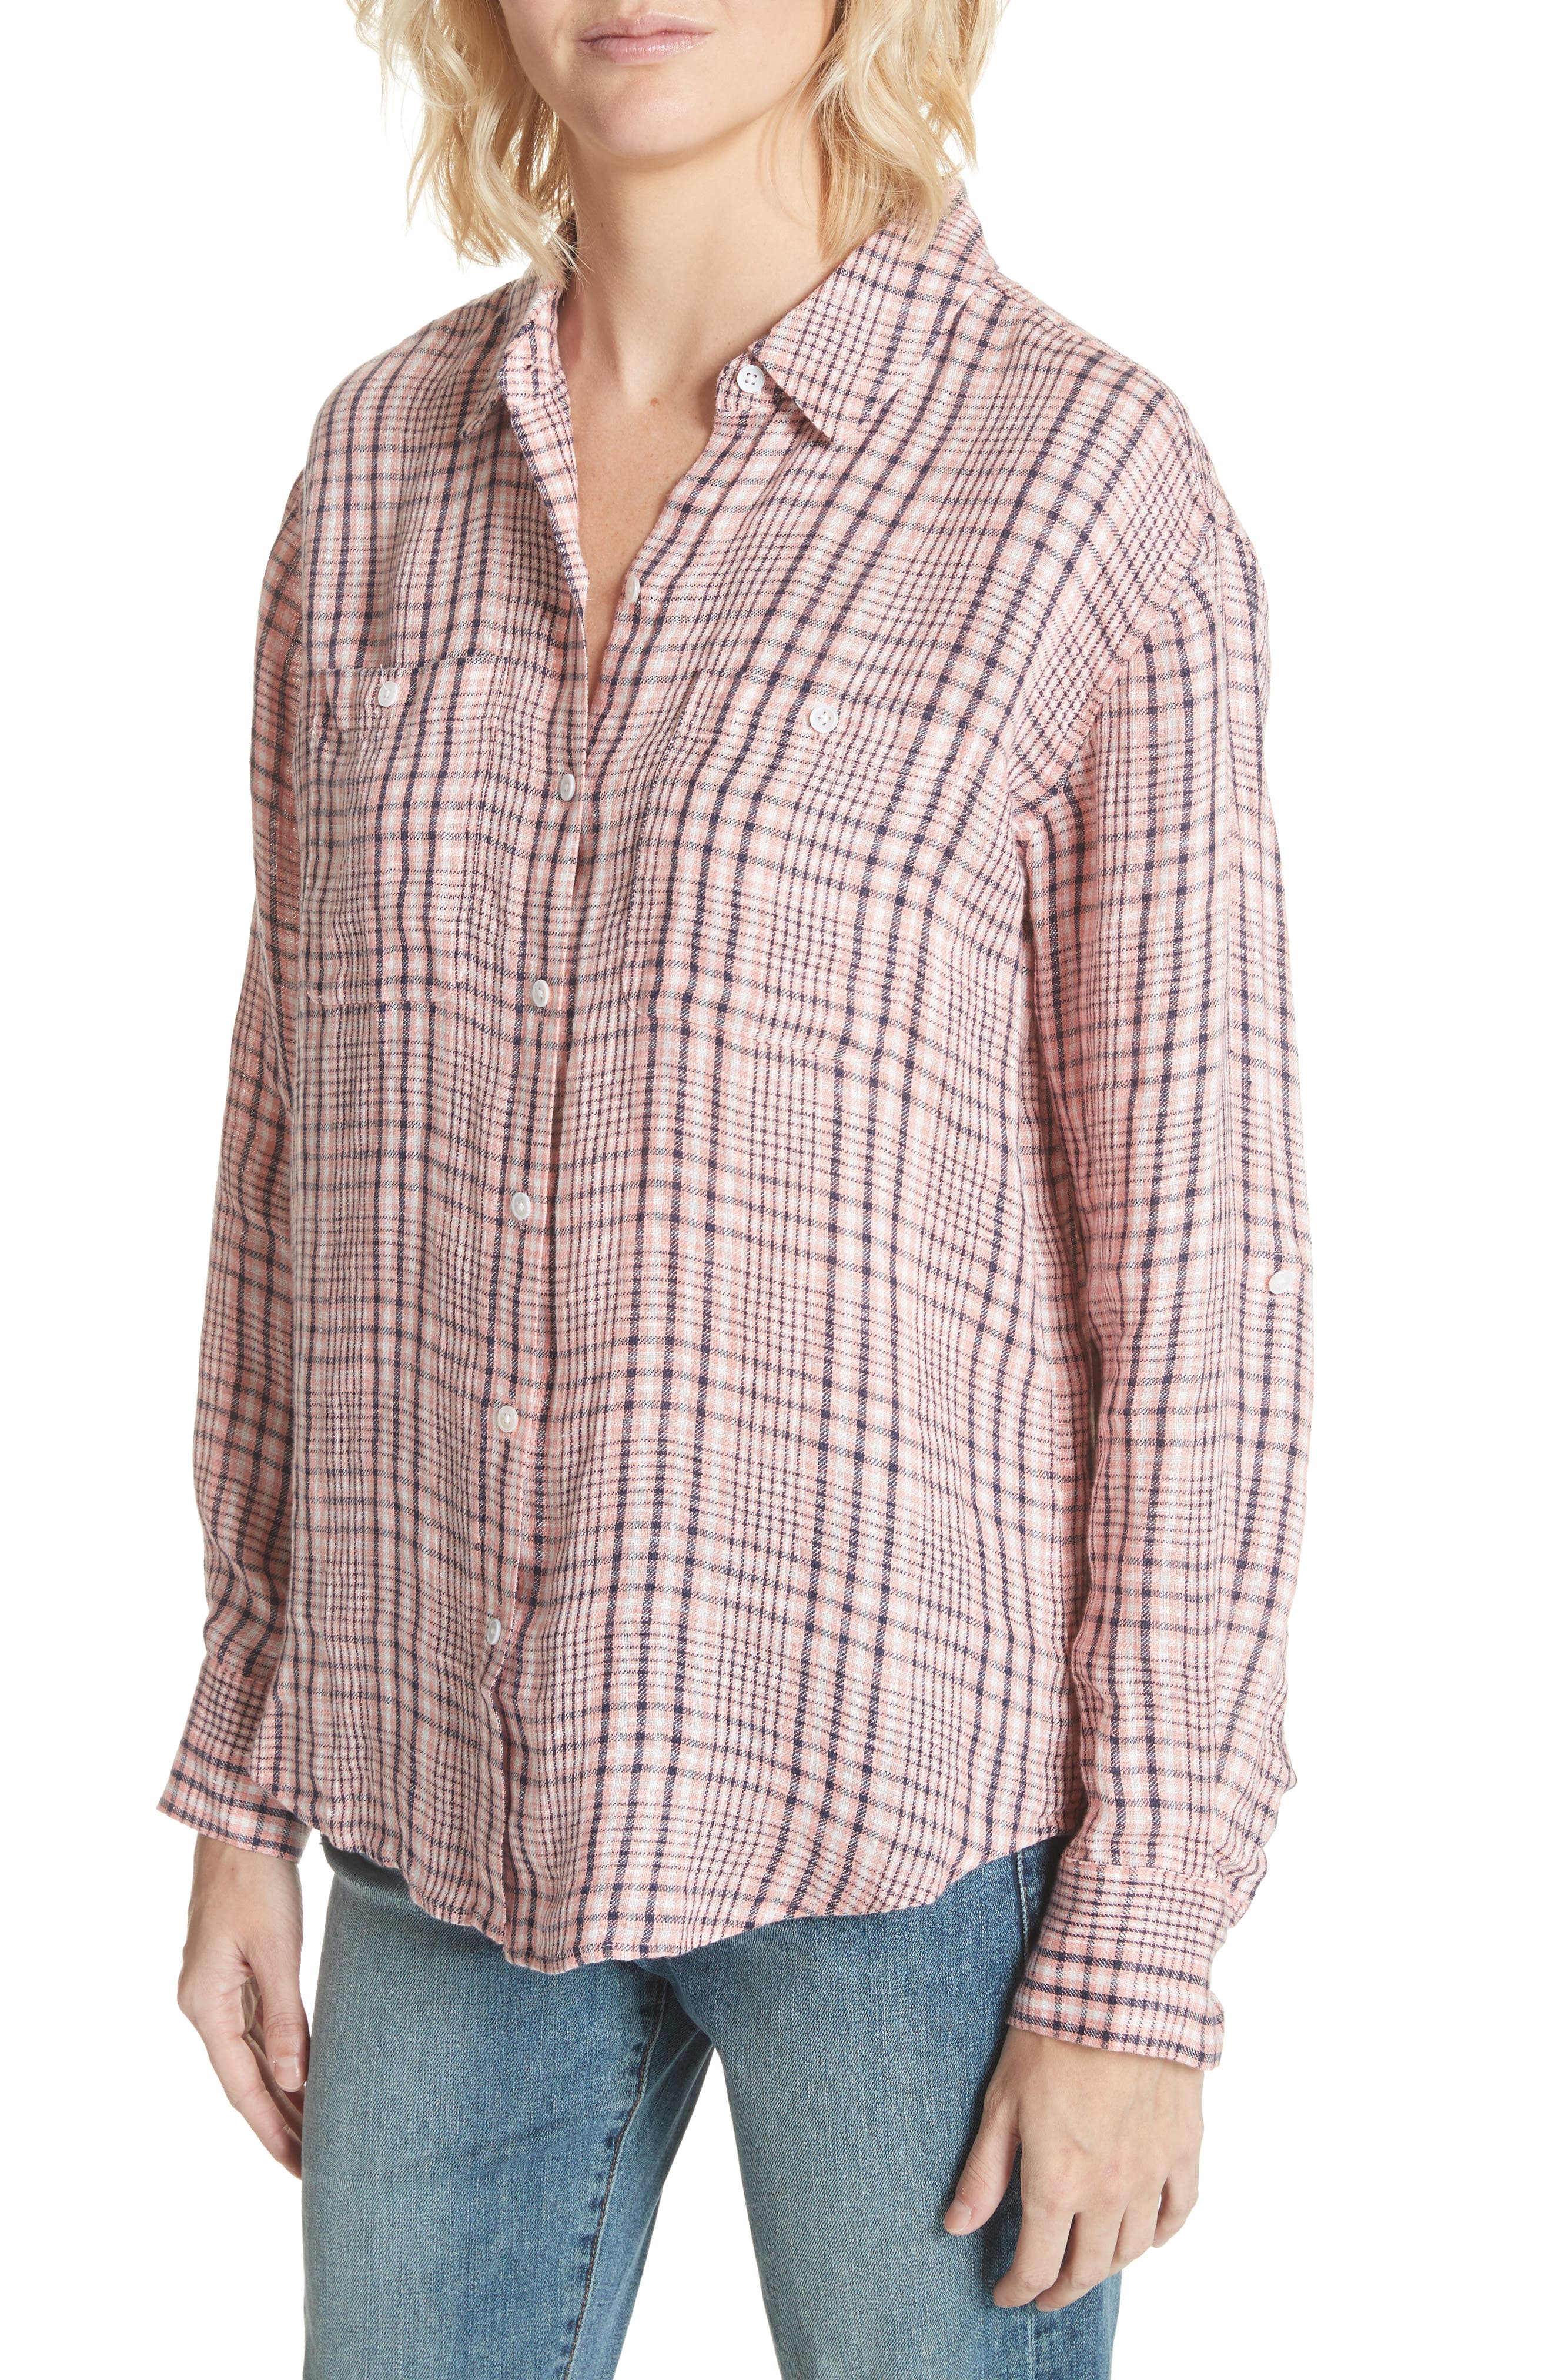 Lidelle Plaid Linen Shirt,                             Alternate thumbnail 4, color,                             658